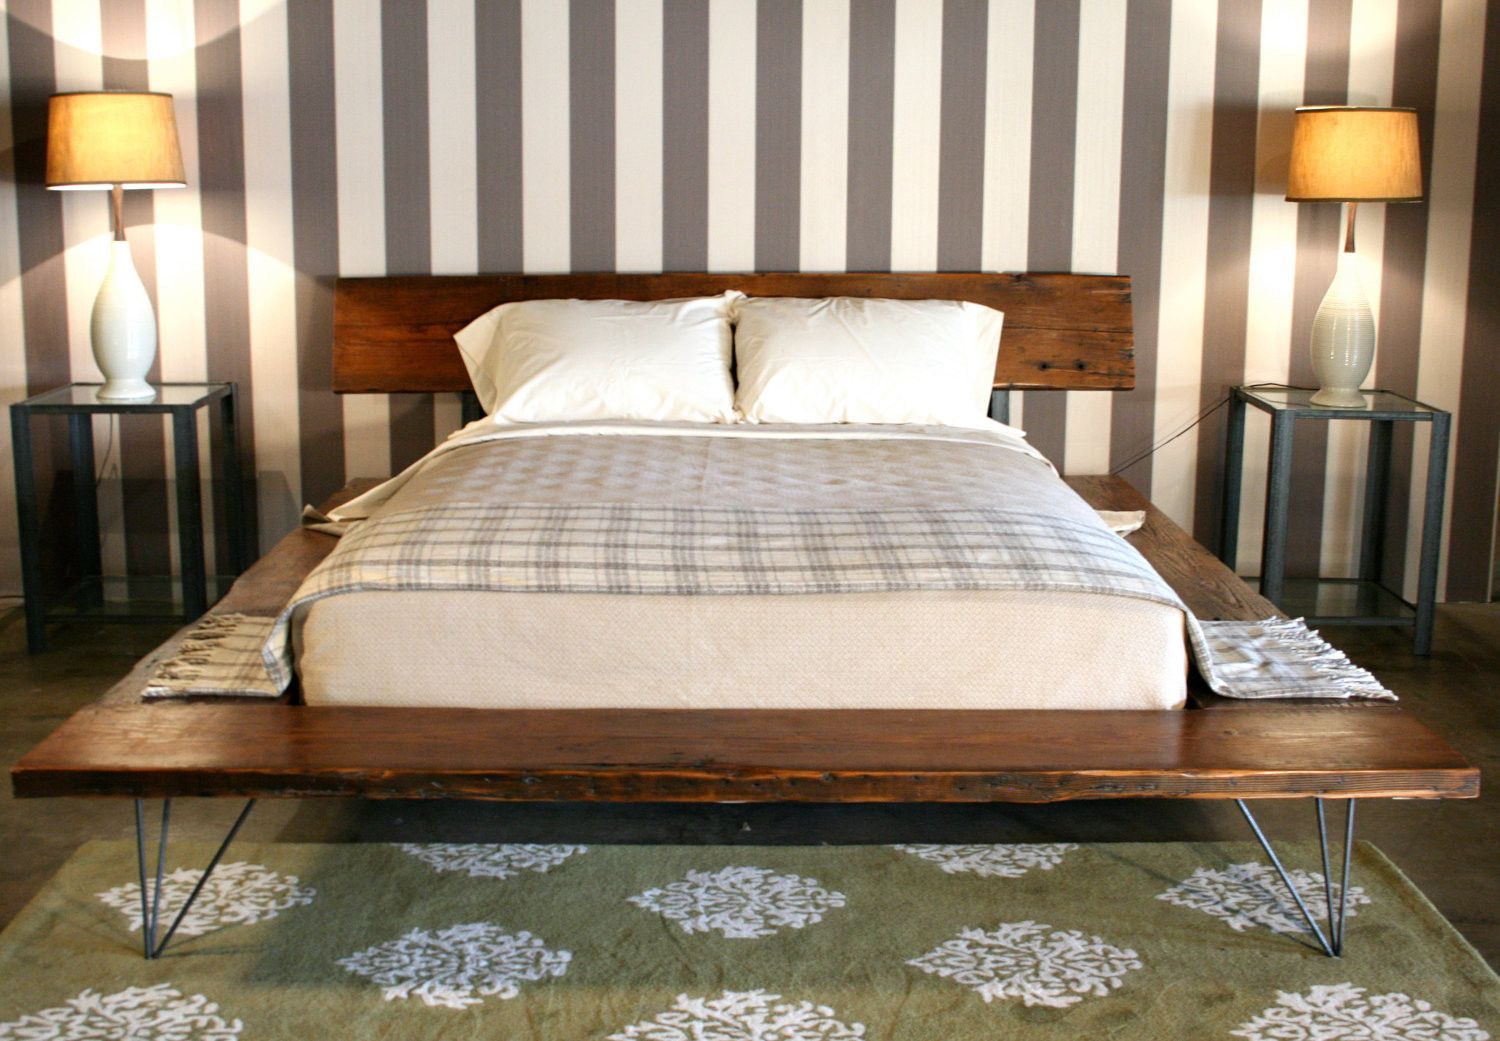 Modern Reclaimed Wood Platform Bed Frame Handmade Sustainably In Los Angeles From Sonder